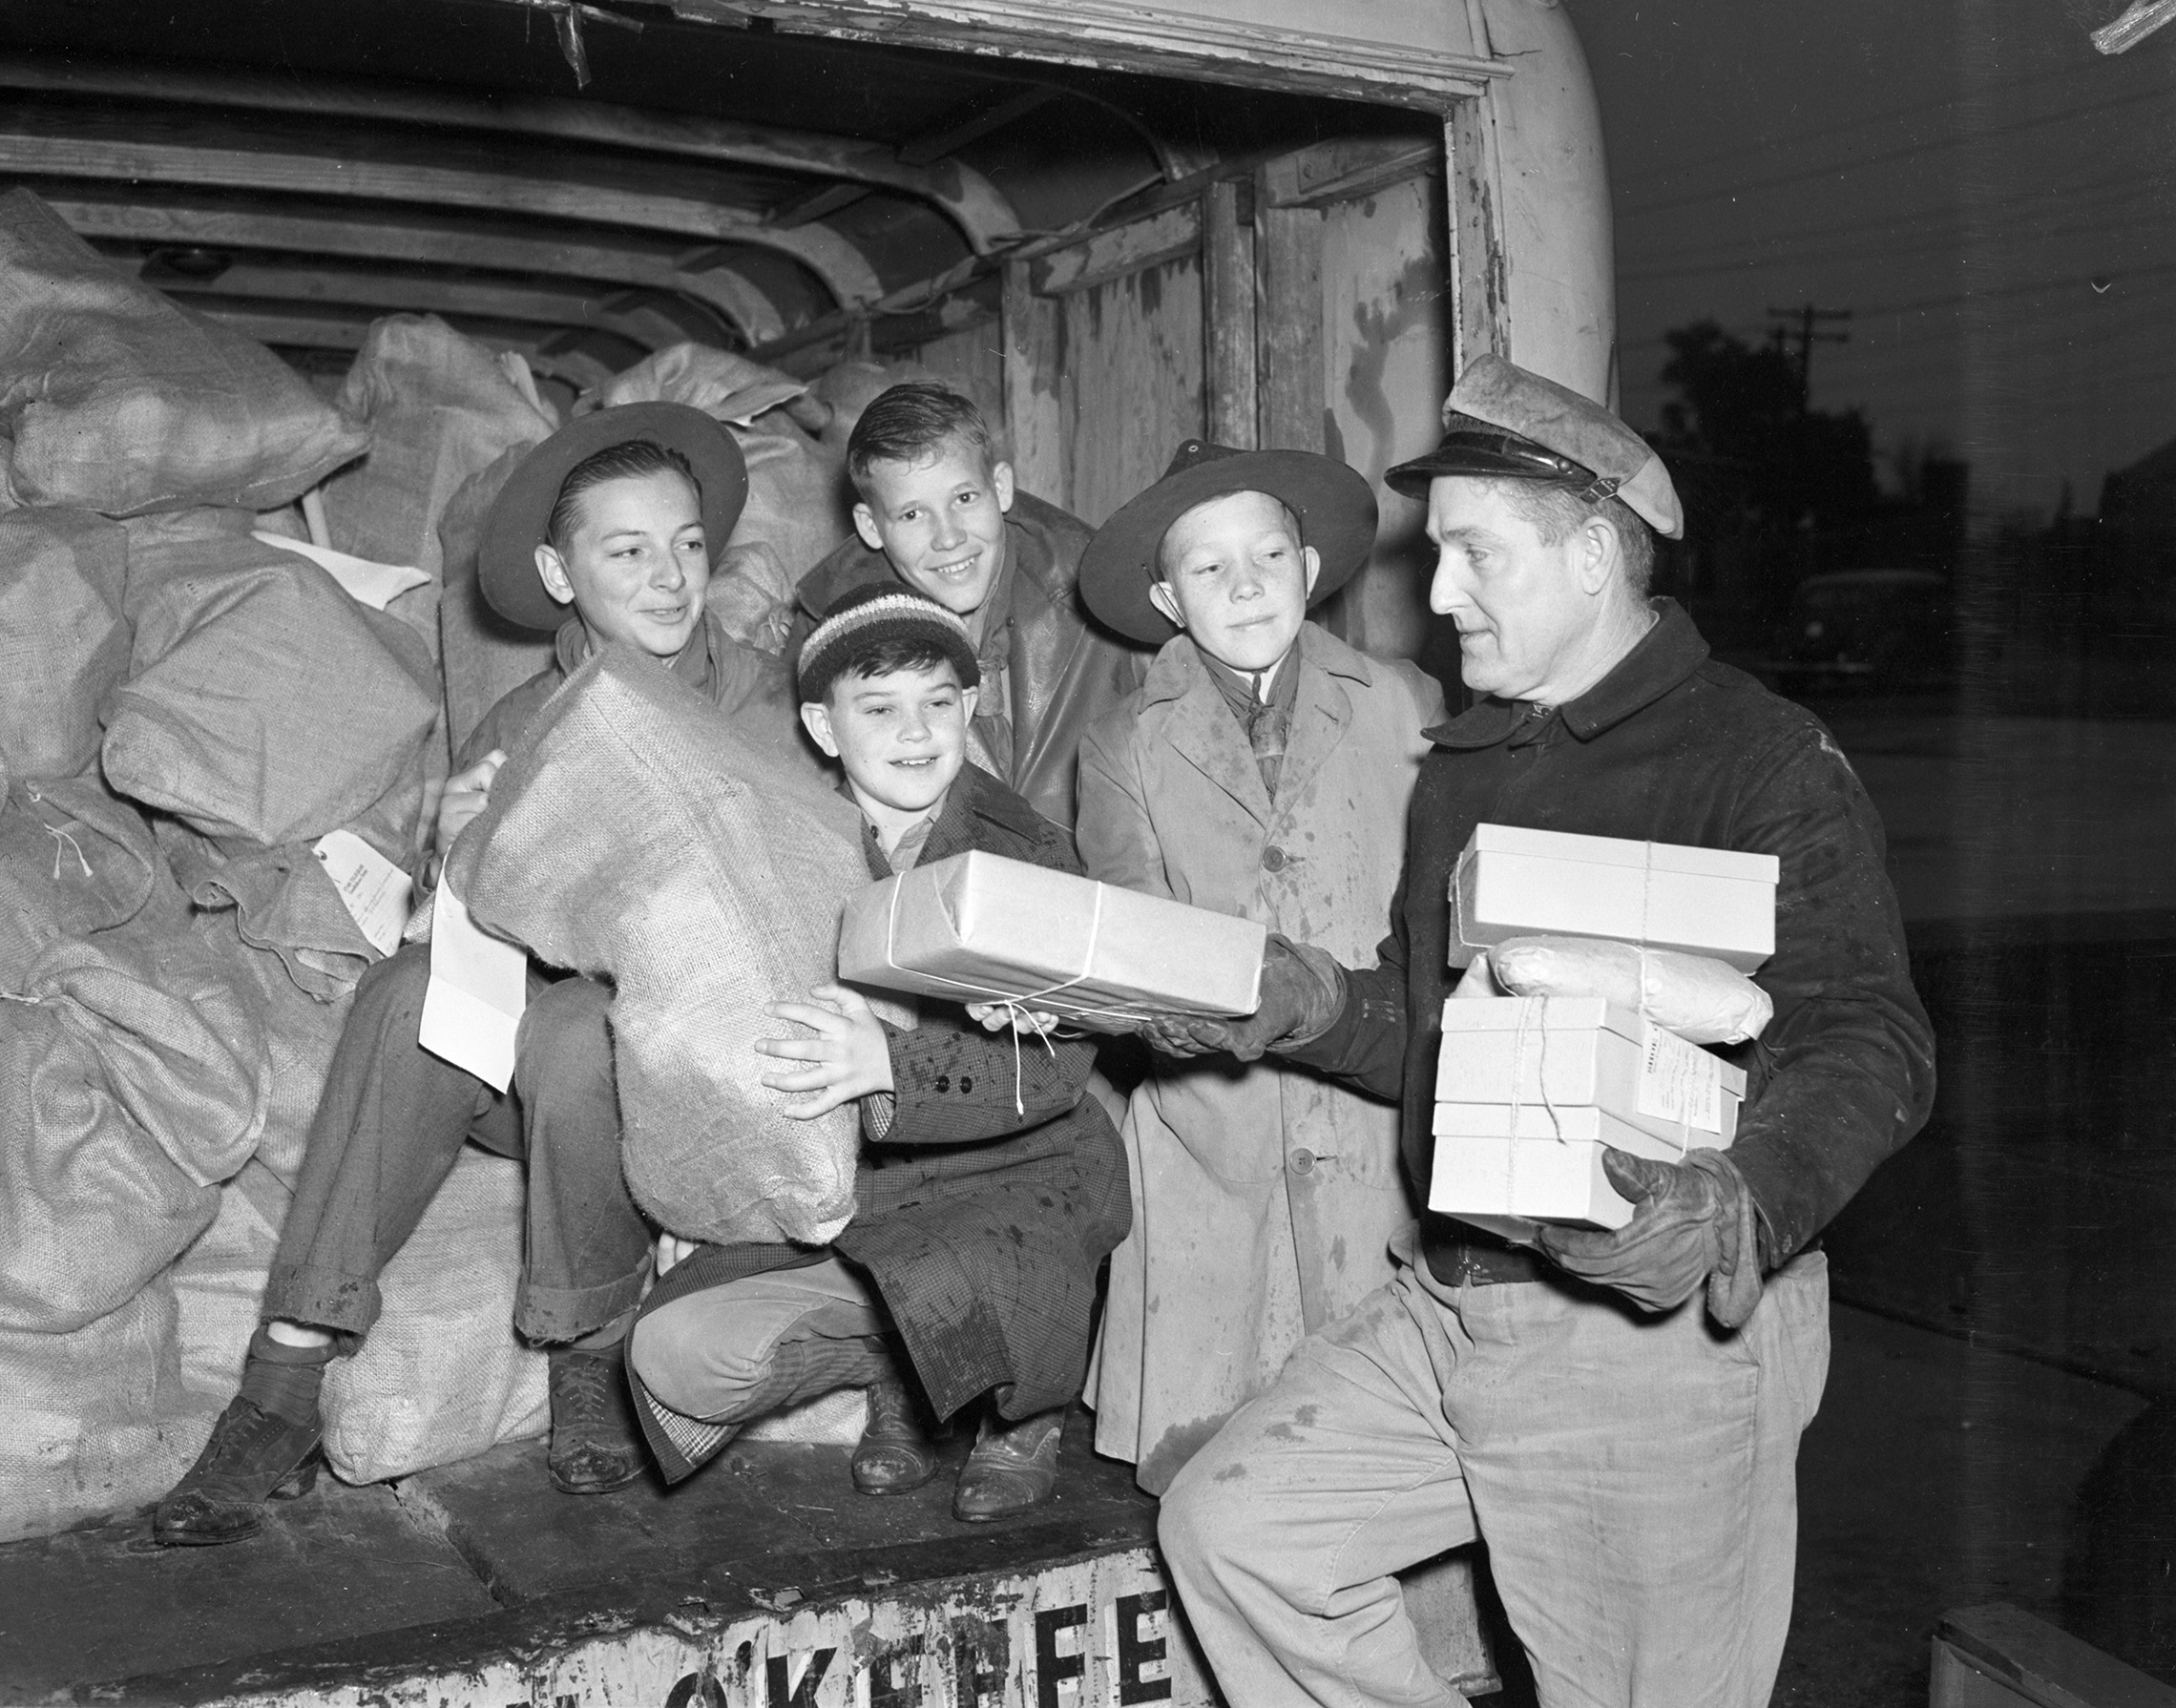 Goodfellow_Truck Delivery_1937.jpg